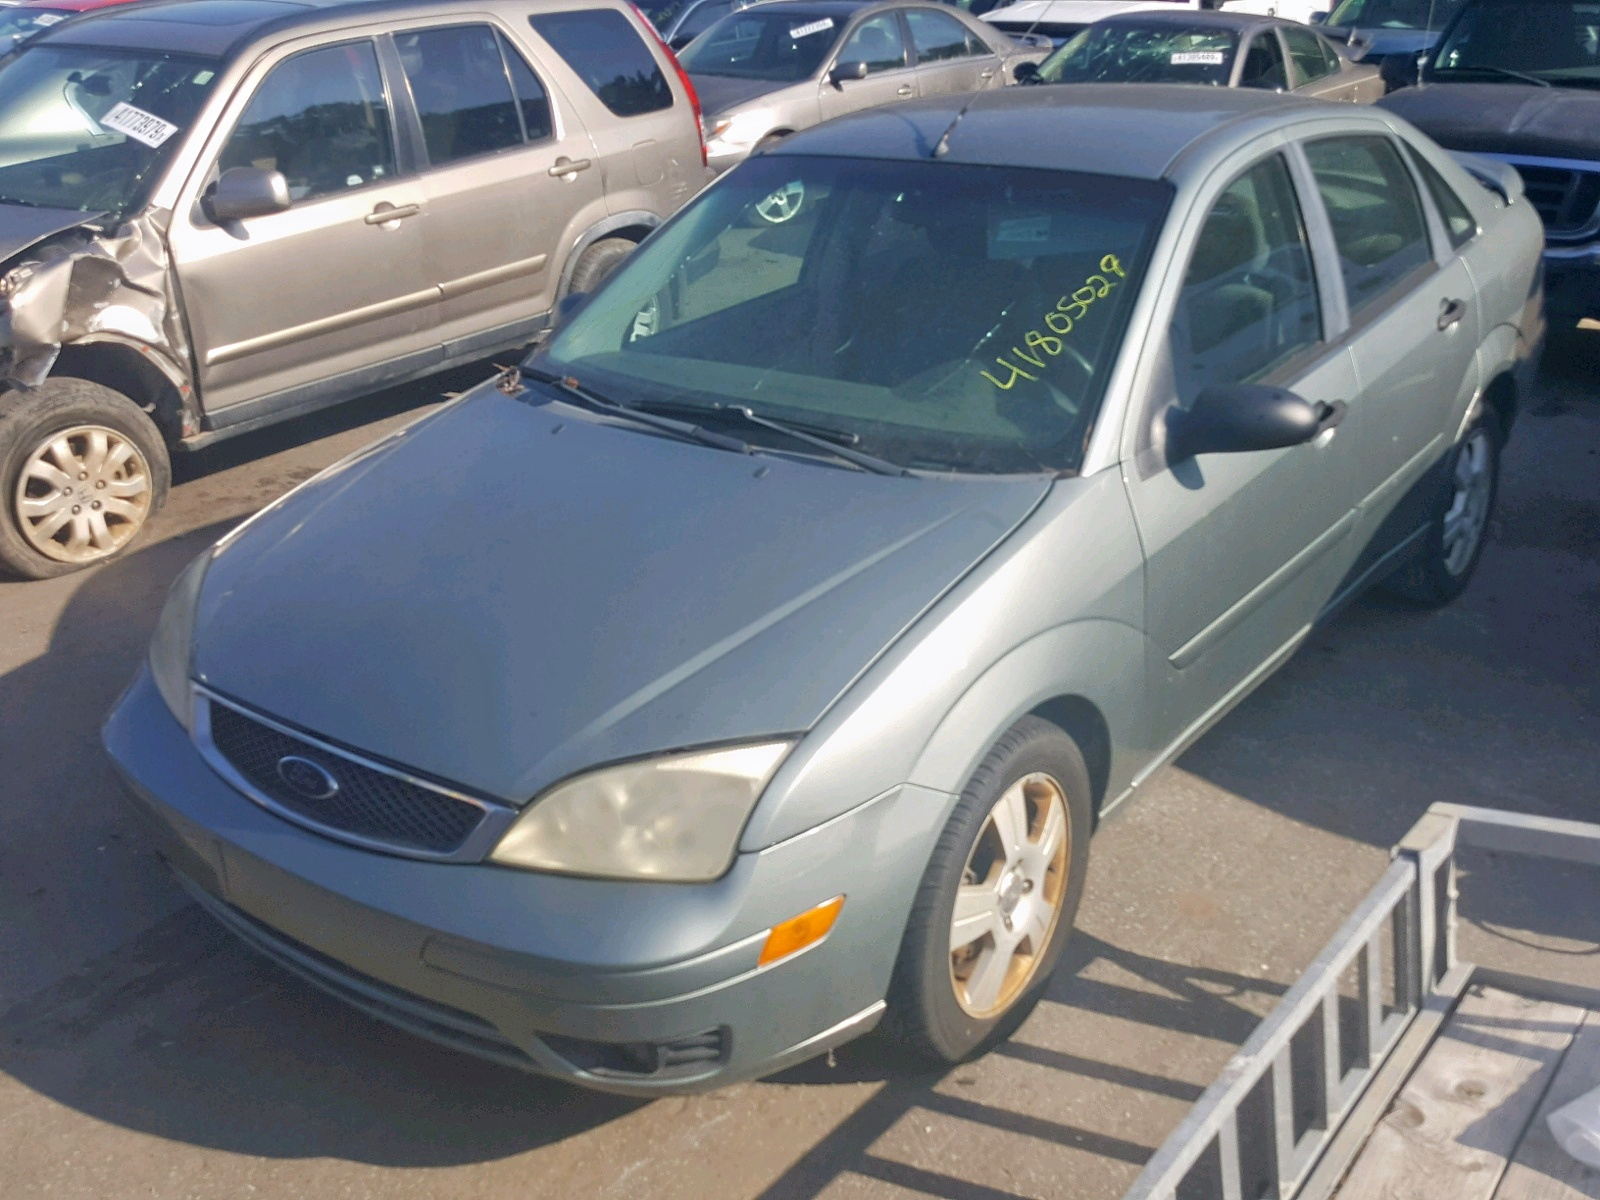 2005 Ford Focus Zx4 2.0L Right View